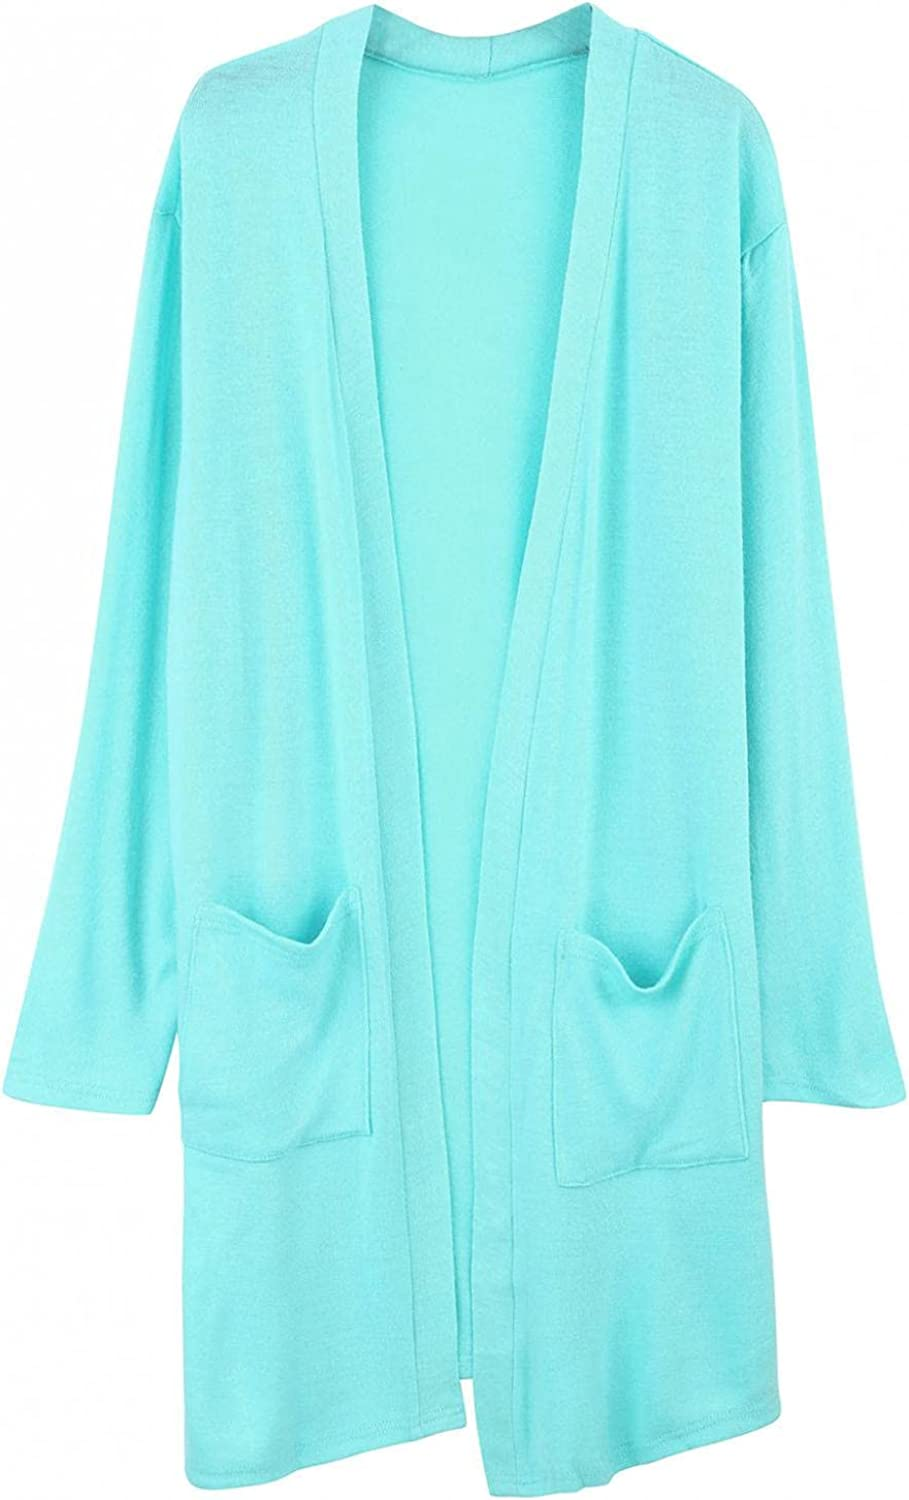 Women's Soft Long Sleeve Cardigans Solid Color Open Front Loose Sweater Side Slit Outwear with Pockets